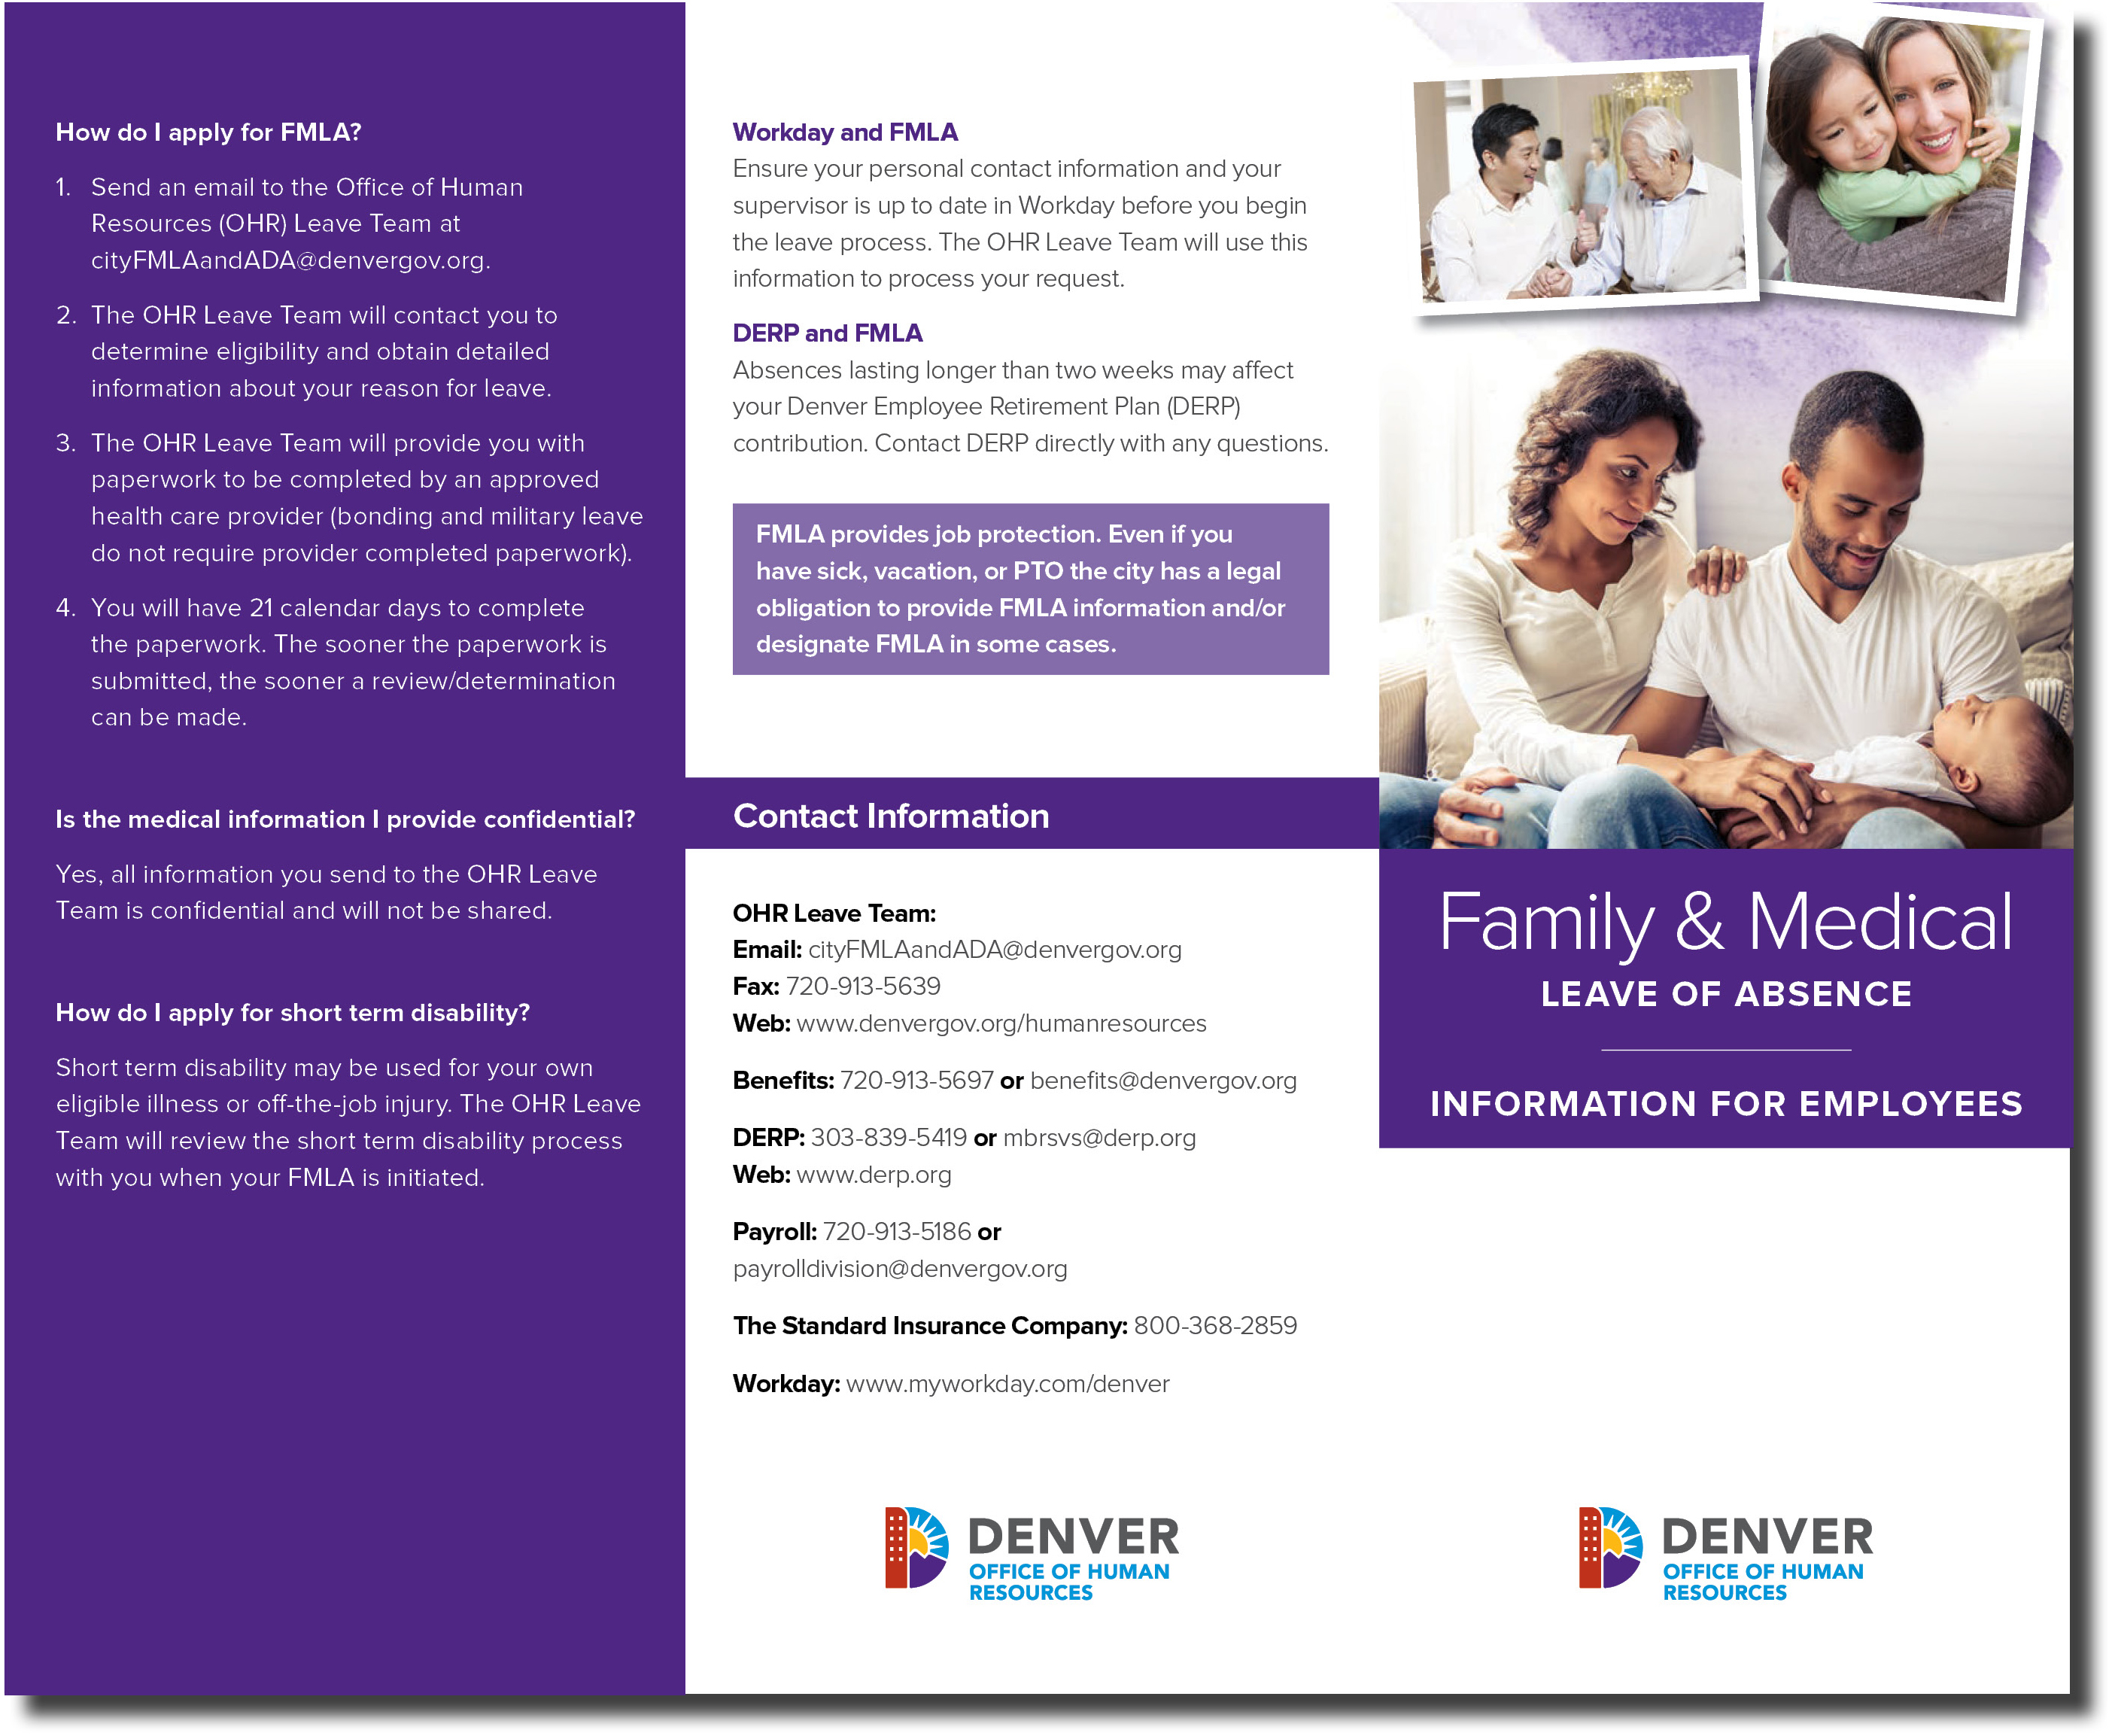 FMLA Brochure Cover Image links to PDF